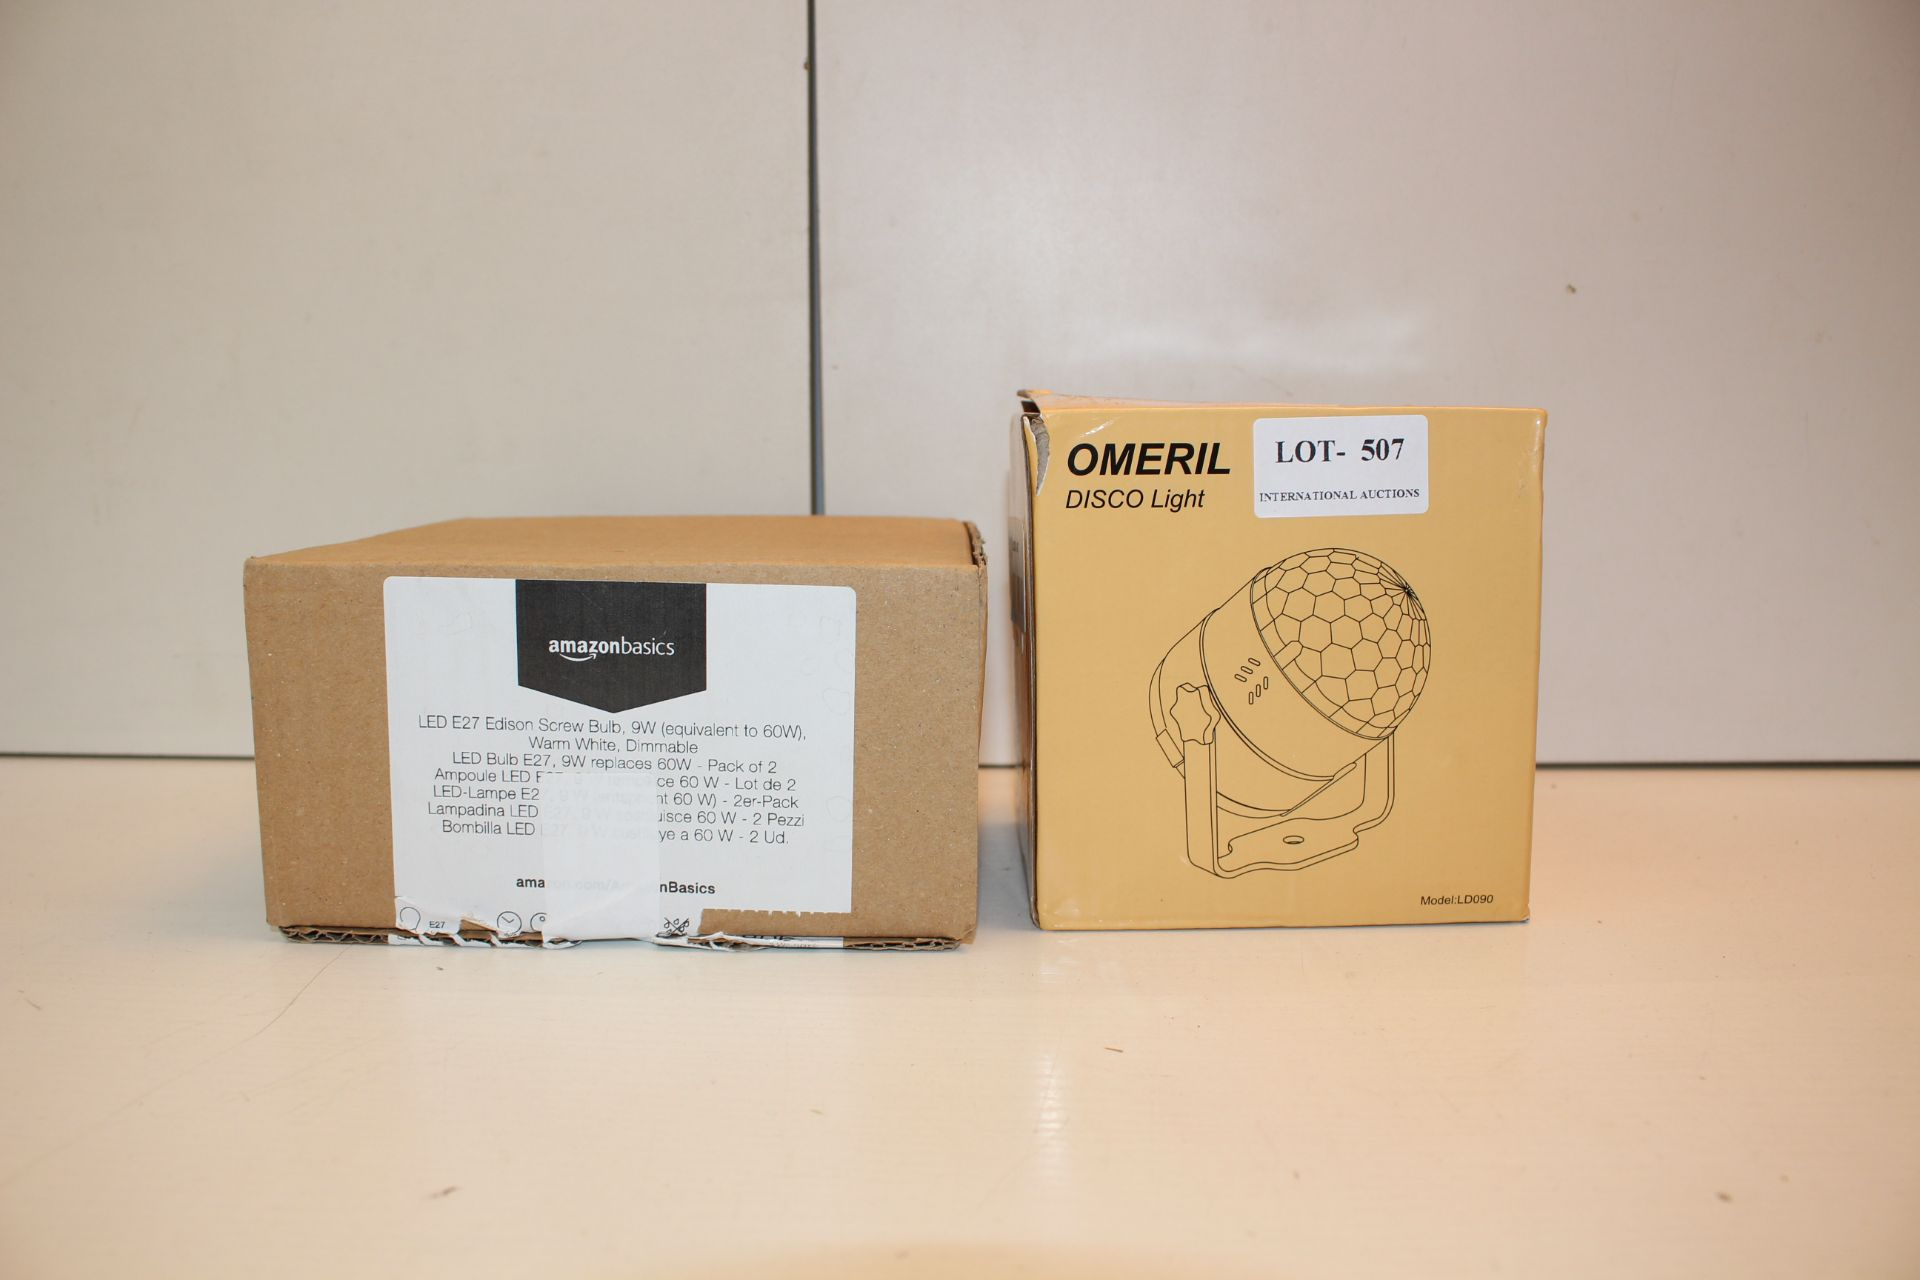 X2 BOXED ITEMS LICLUDING LIGHTS AND DISCO BALLCondition ReportAppraisal Available on Request- All